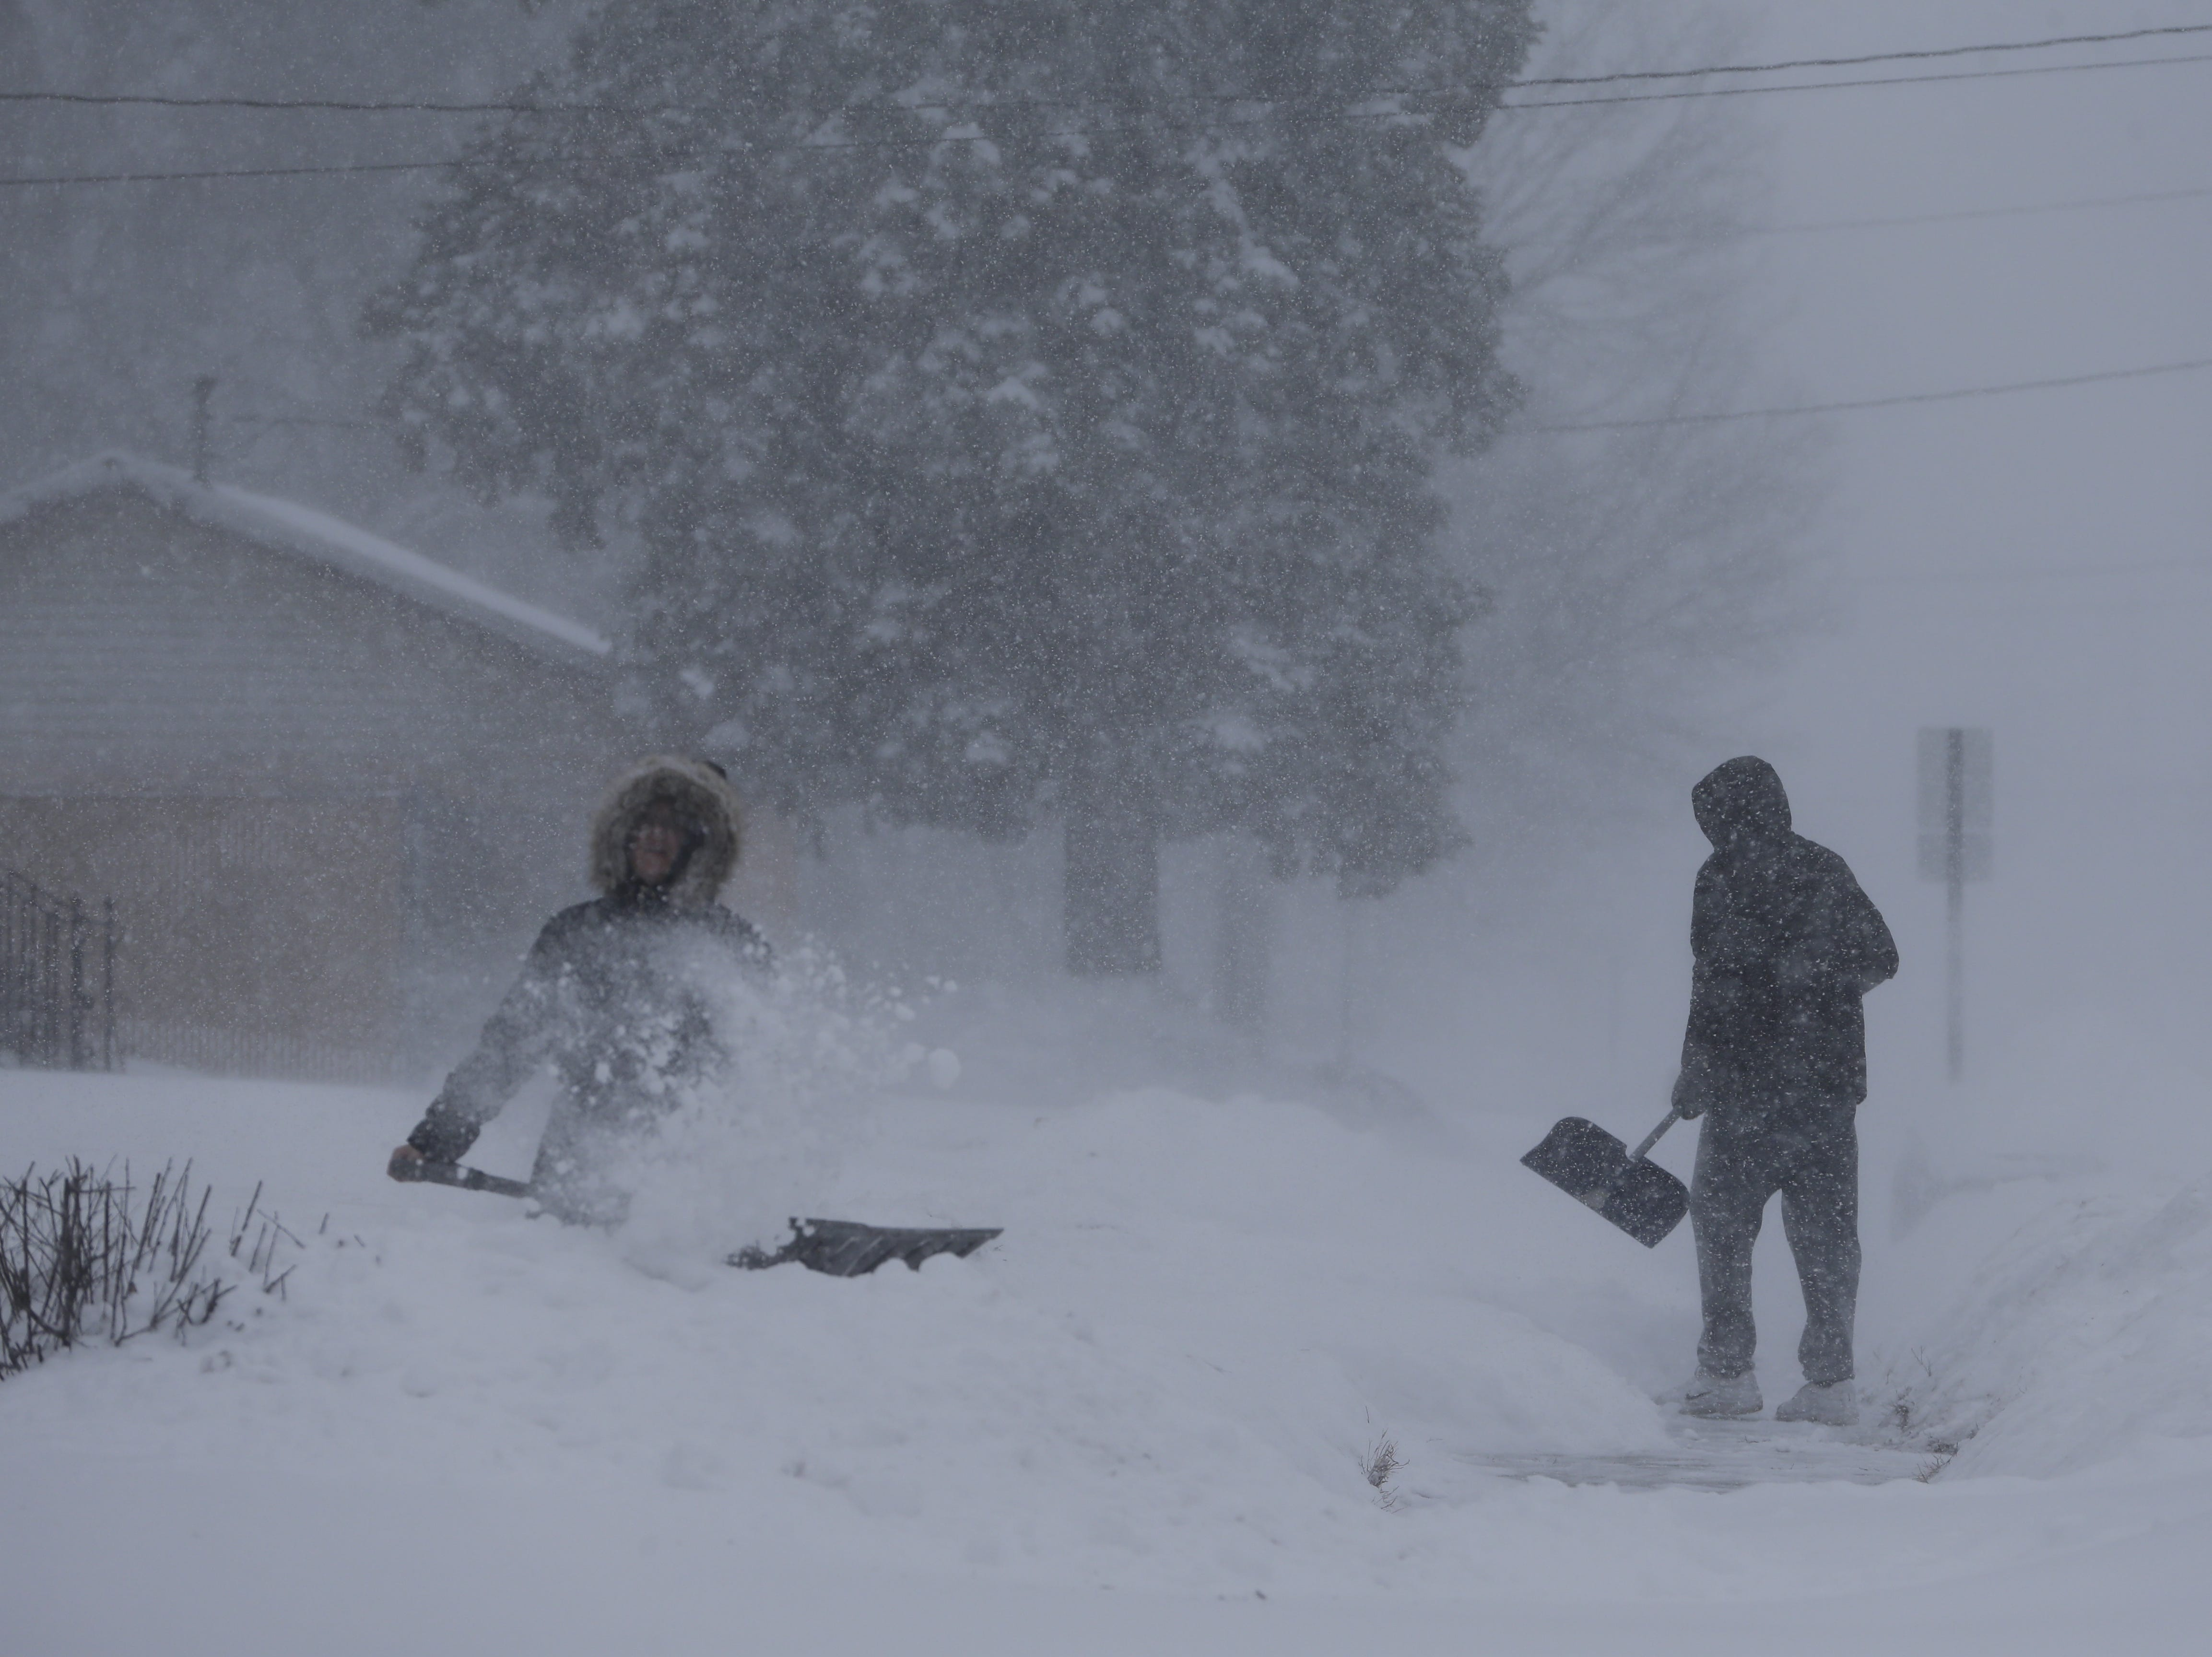 Abby O'Brien and Spencer Couser shovel snow from their sidewalk on the 1100 block of Marshall Street during a snowstorm Monday, January 28, 2019, in Manitowoc, Wis.